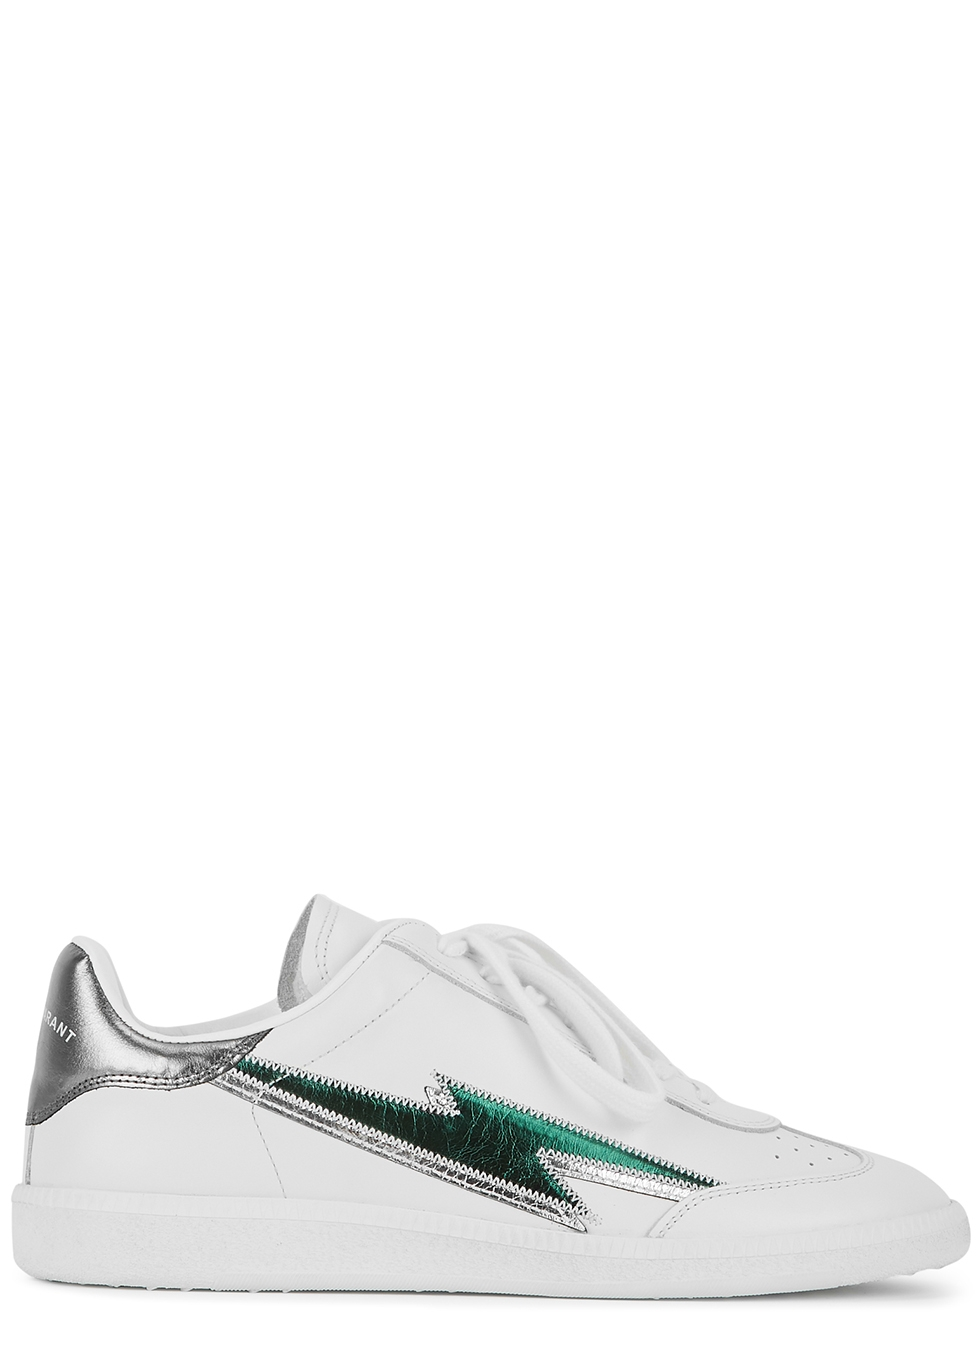 Bryce white appliquéd leather sneakers